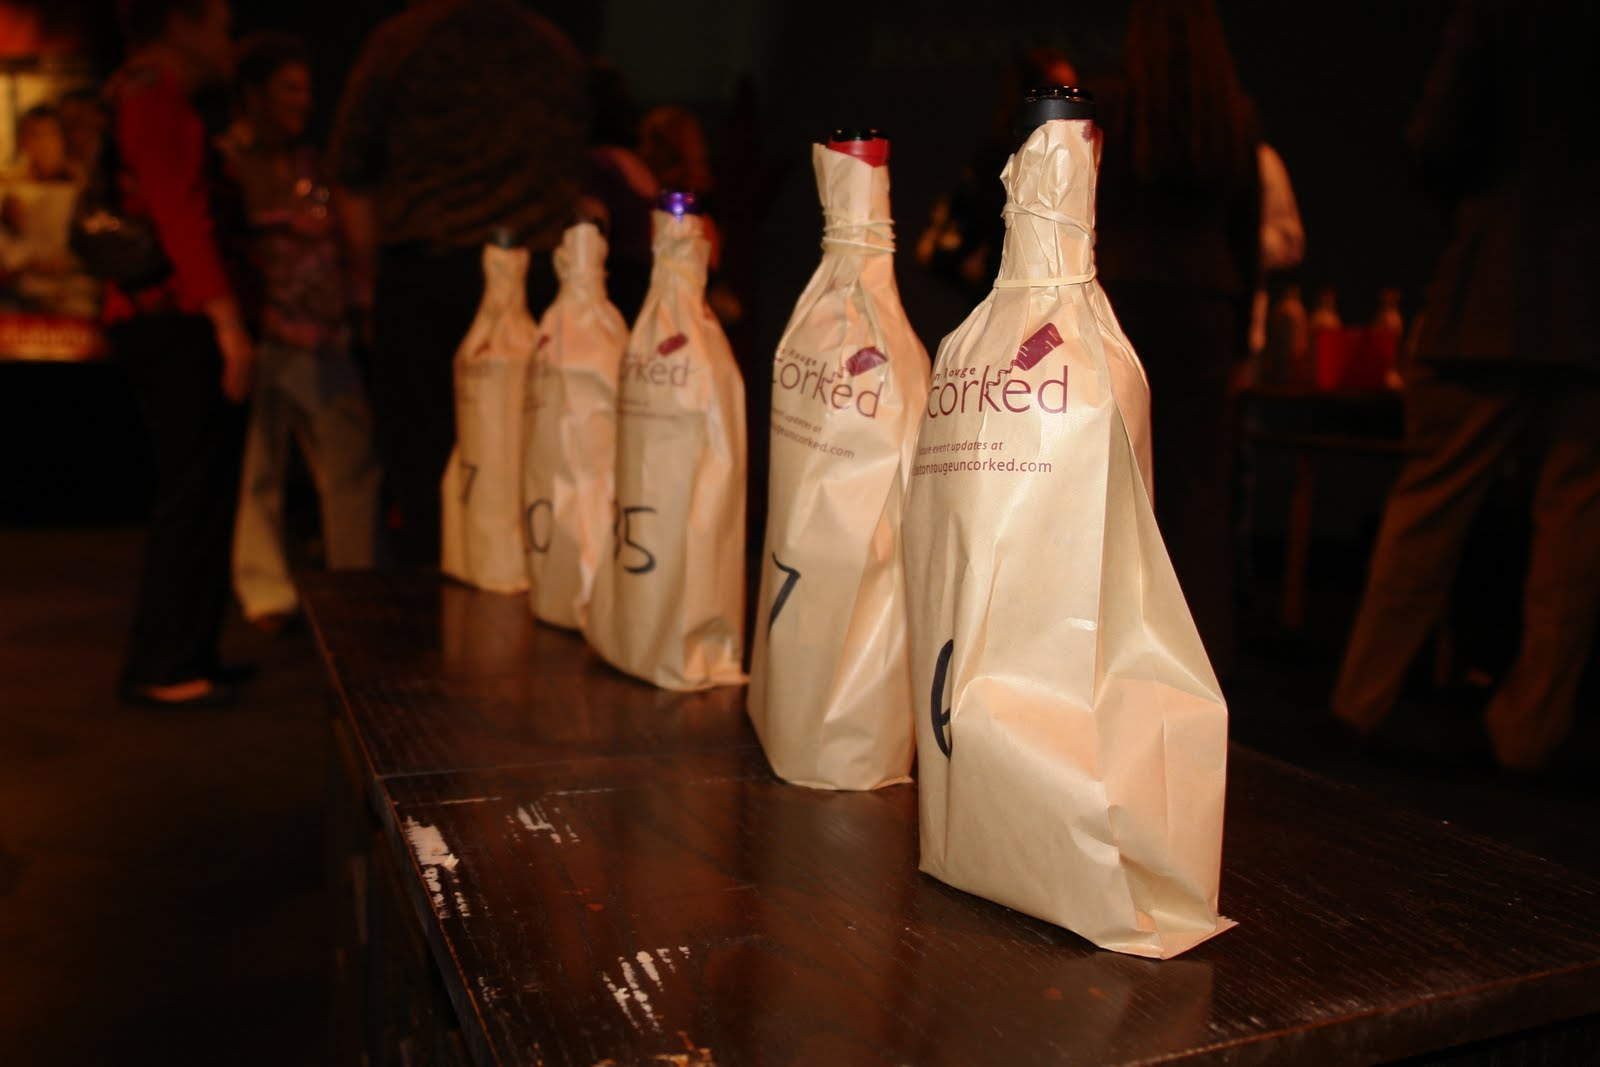 Baton Rouge Uncorked Wine Bottles at the Baton Rouge Little Theater